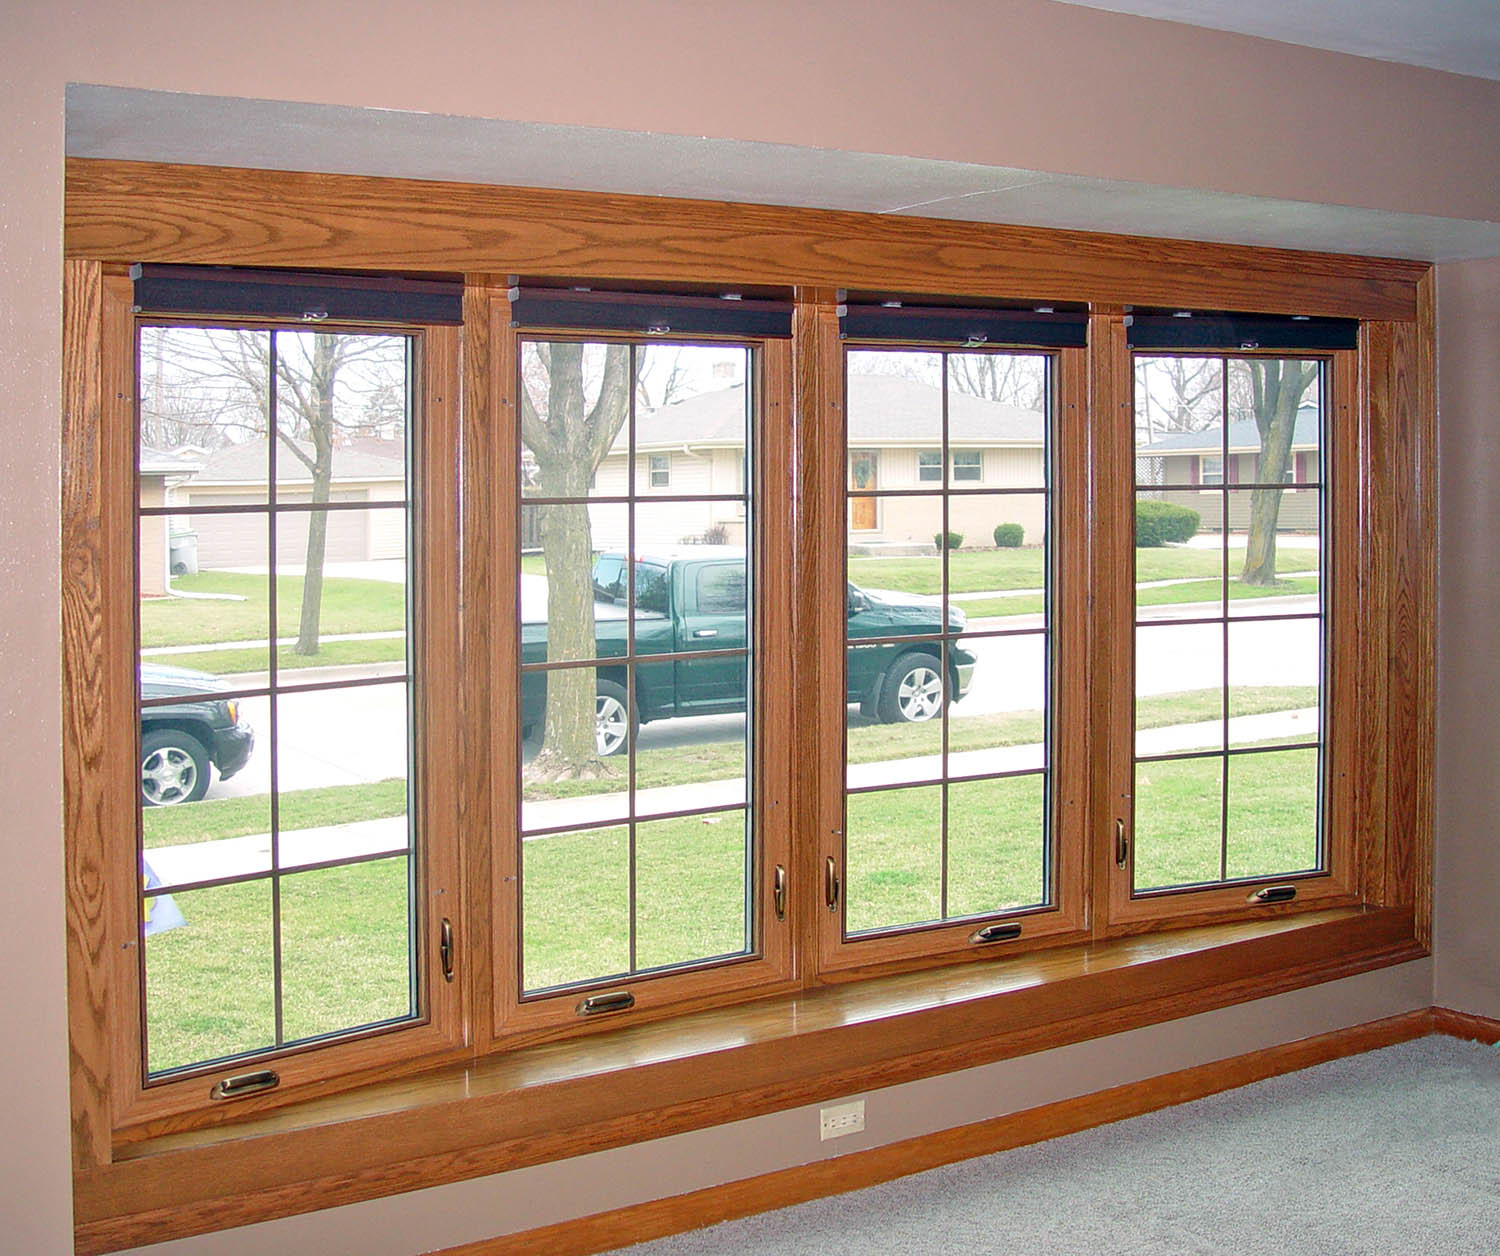 Low E Windows : Are investing in low e windows worth it homeadvisor